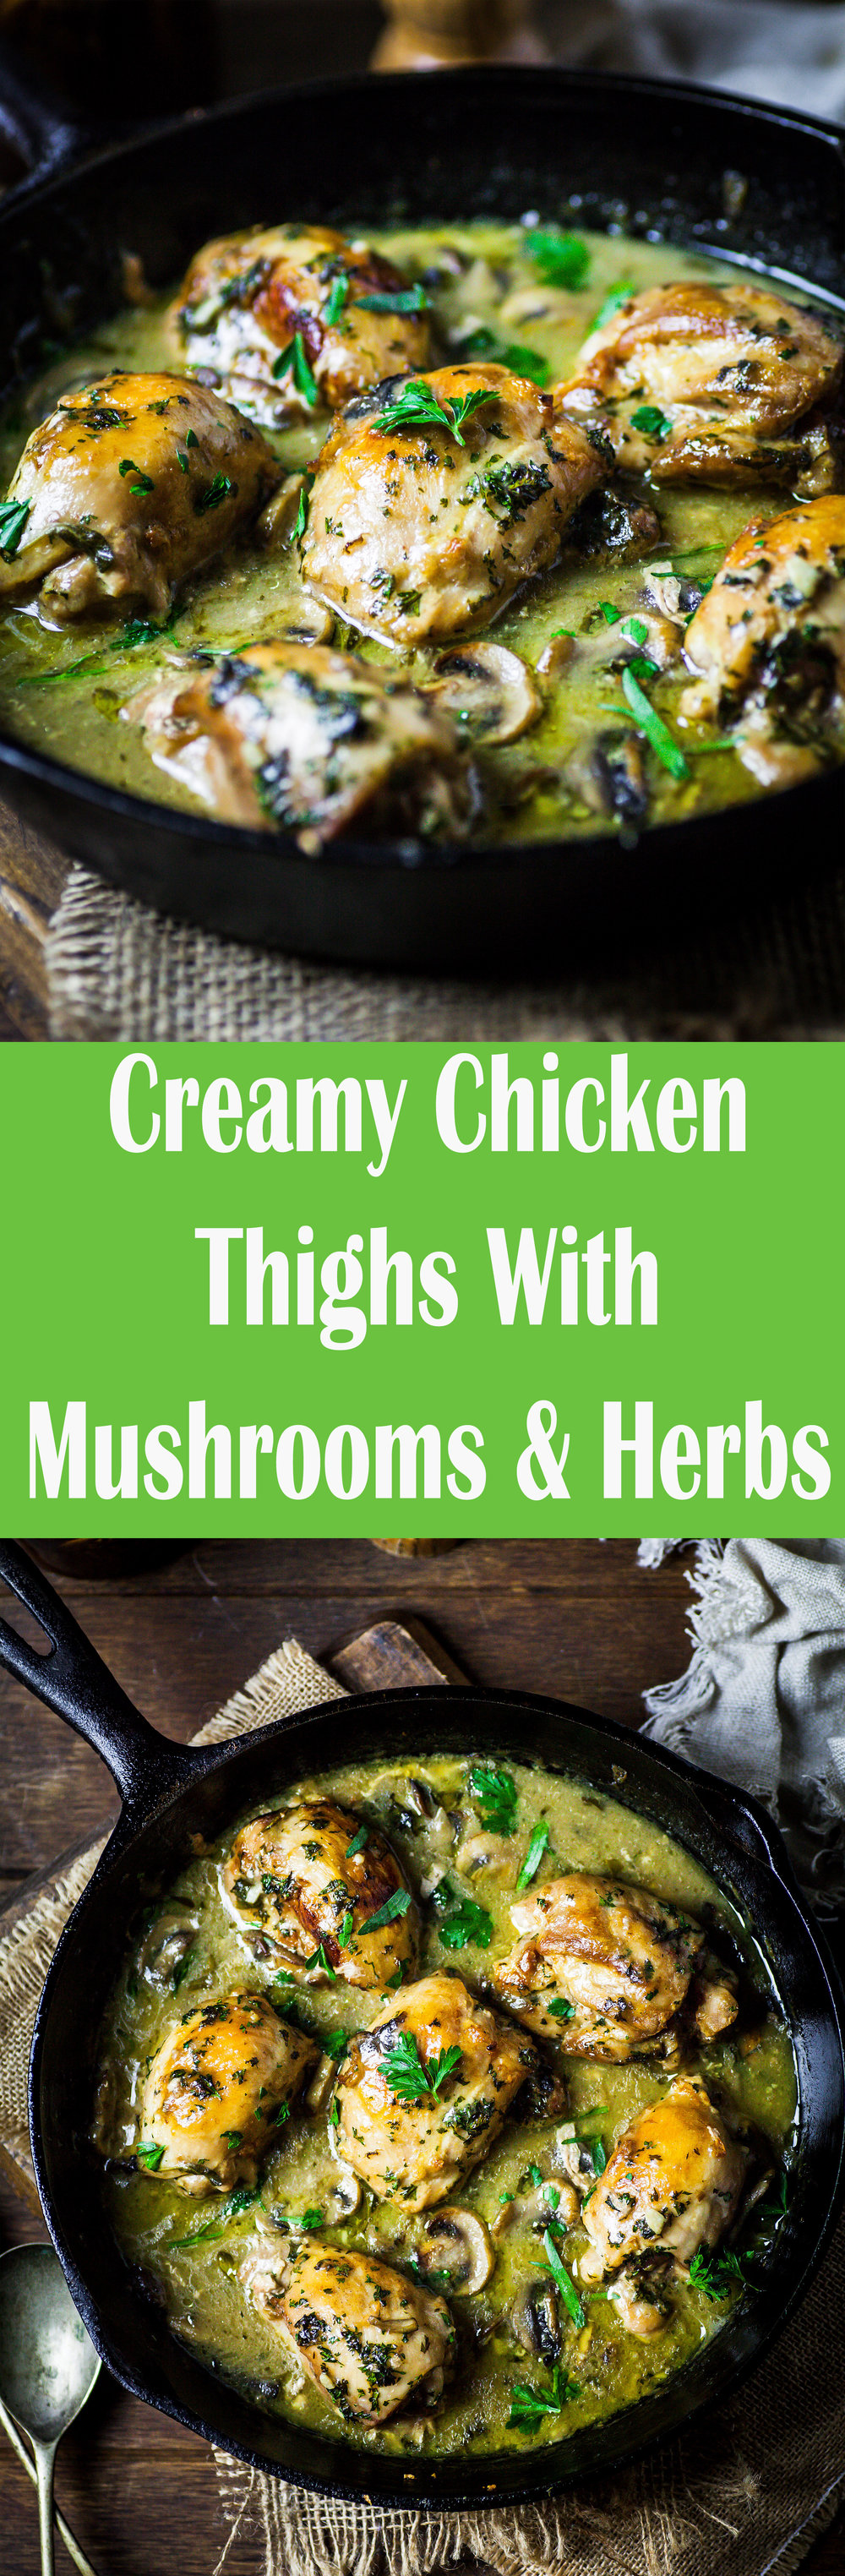 Creamy Chicken Thighs With Mushrooms & Herbs {DF, GF}